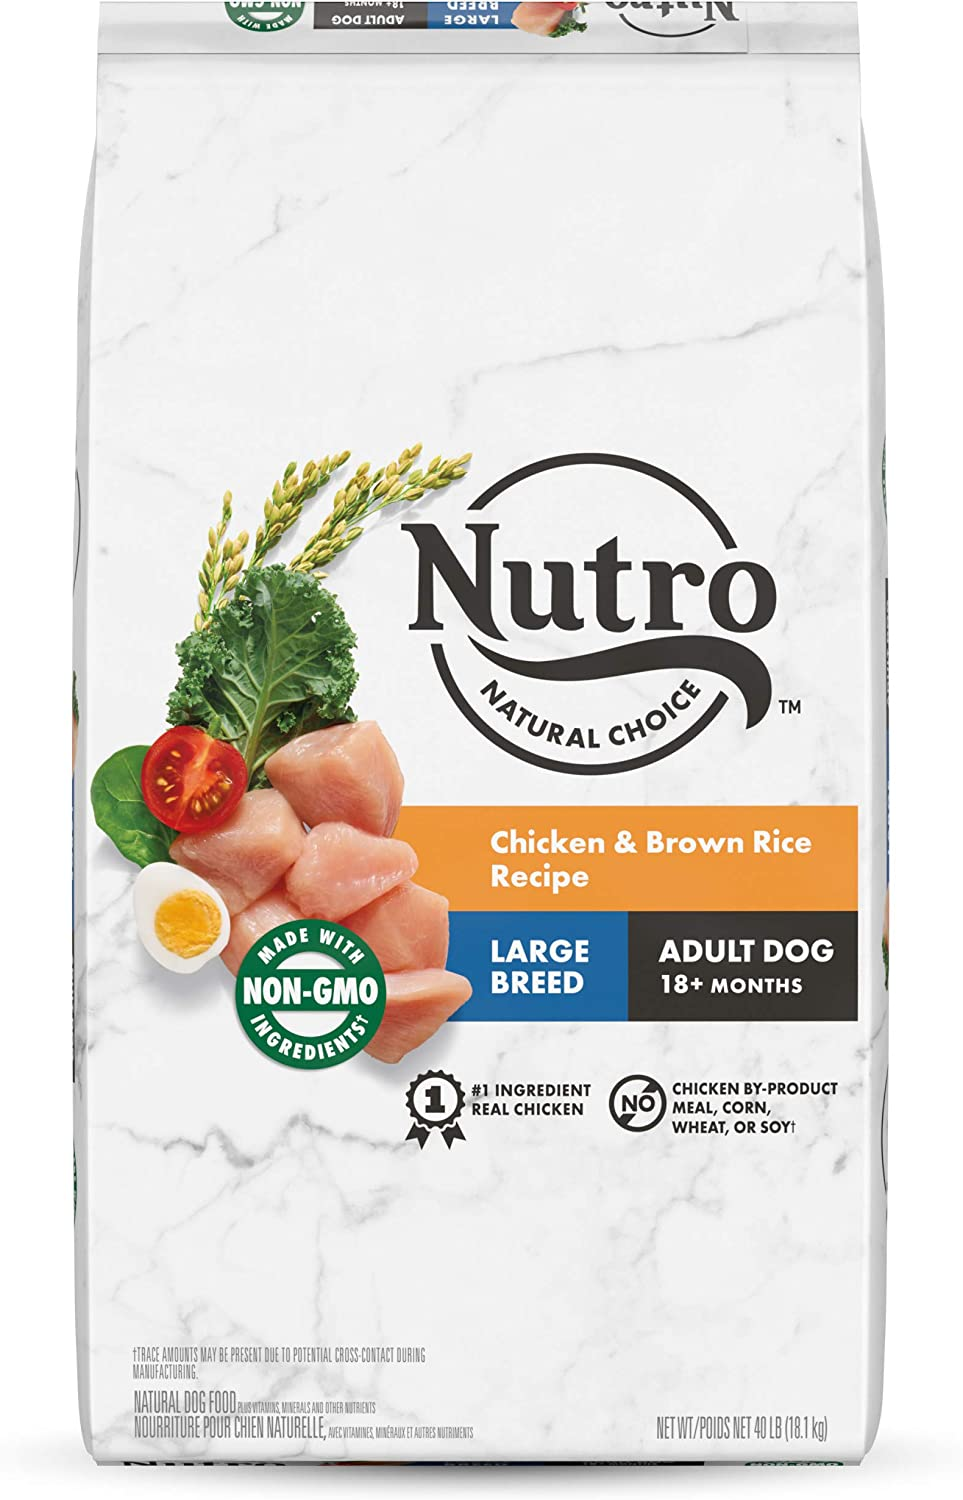 NUTRO NATURAL CHOICE Large Breed Adult & Senior Dry Dog Food, Chicken